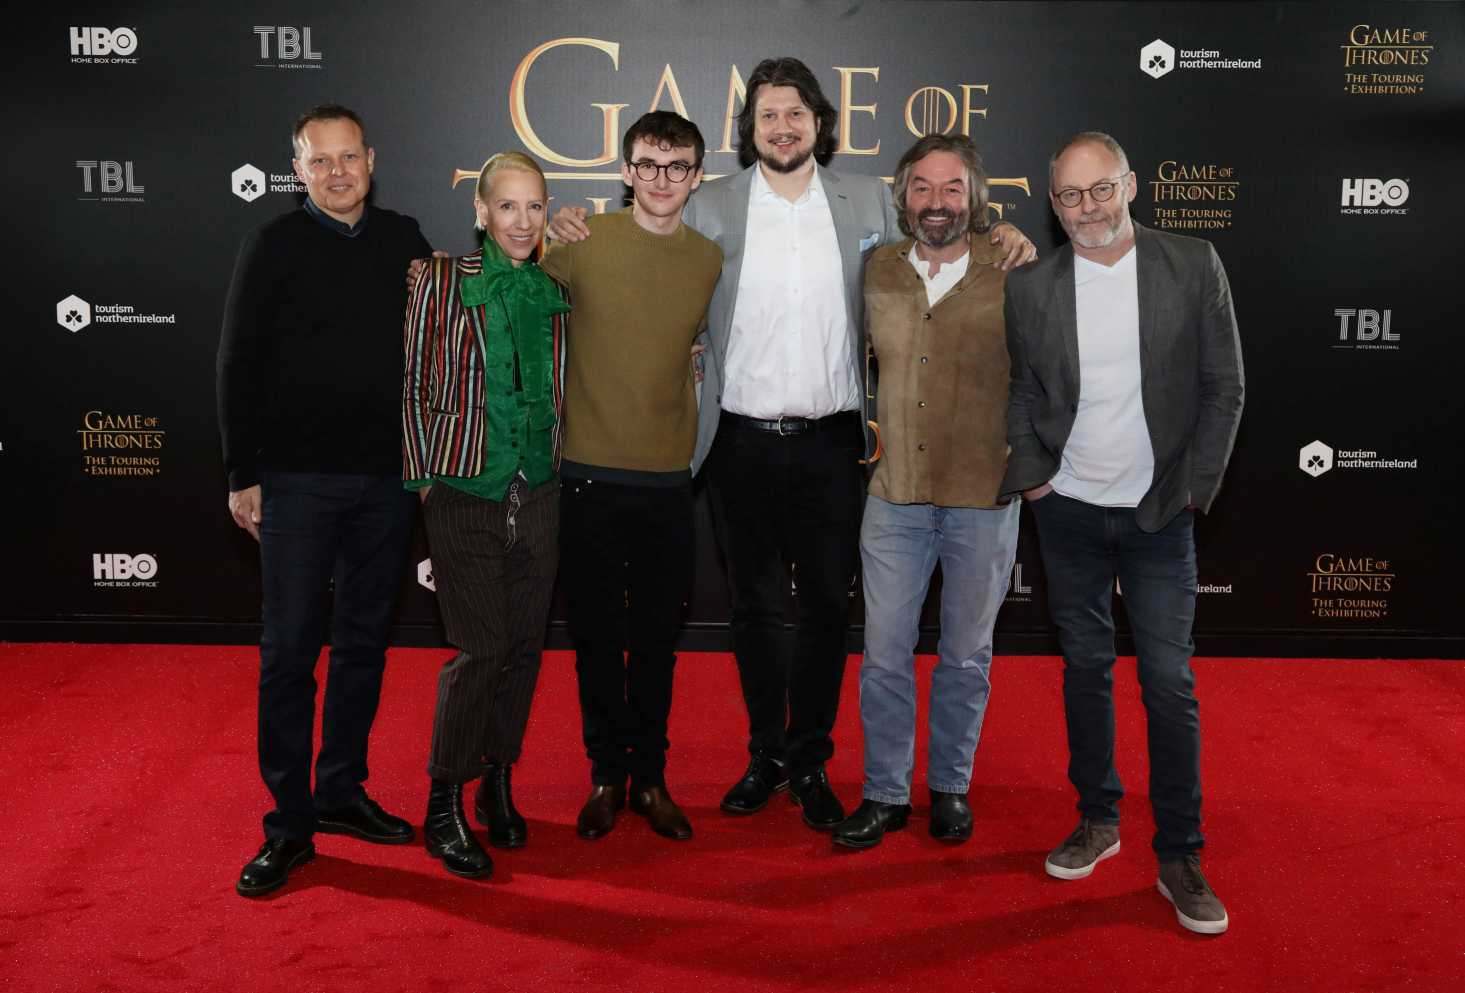 (L-R) Robin Stapley (GES), Michele Clapton (Game of Thrones costume designer), Isaac Hempstead Wright (Game of Thrones – Bran Stark), Jeff Peters (HBO), Ian Beattie (Game of Thrones – Ser Mervyn Trant), Liam Cunningham (Game of Thrones – Davos Seaworth)